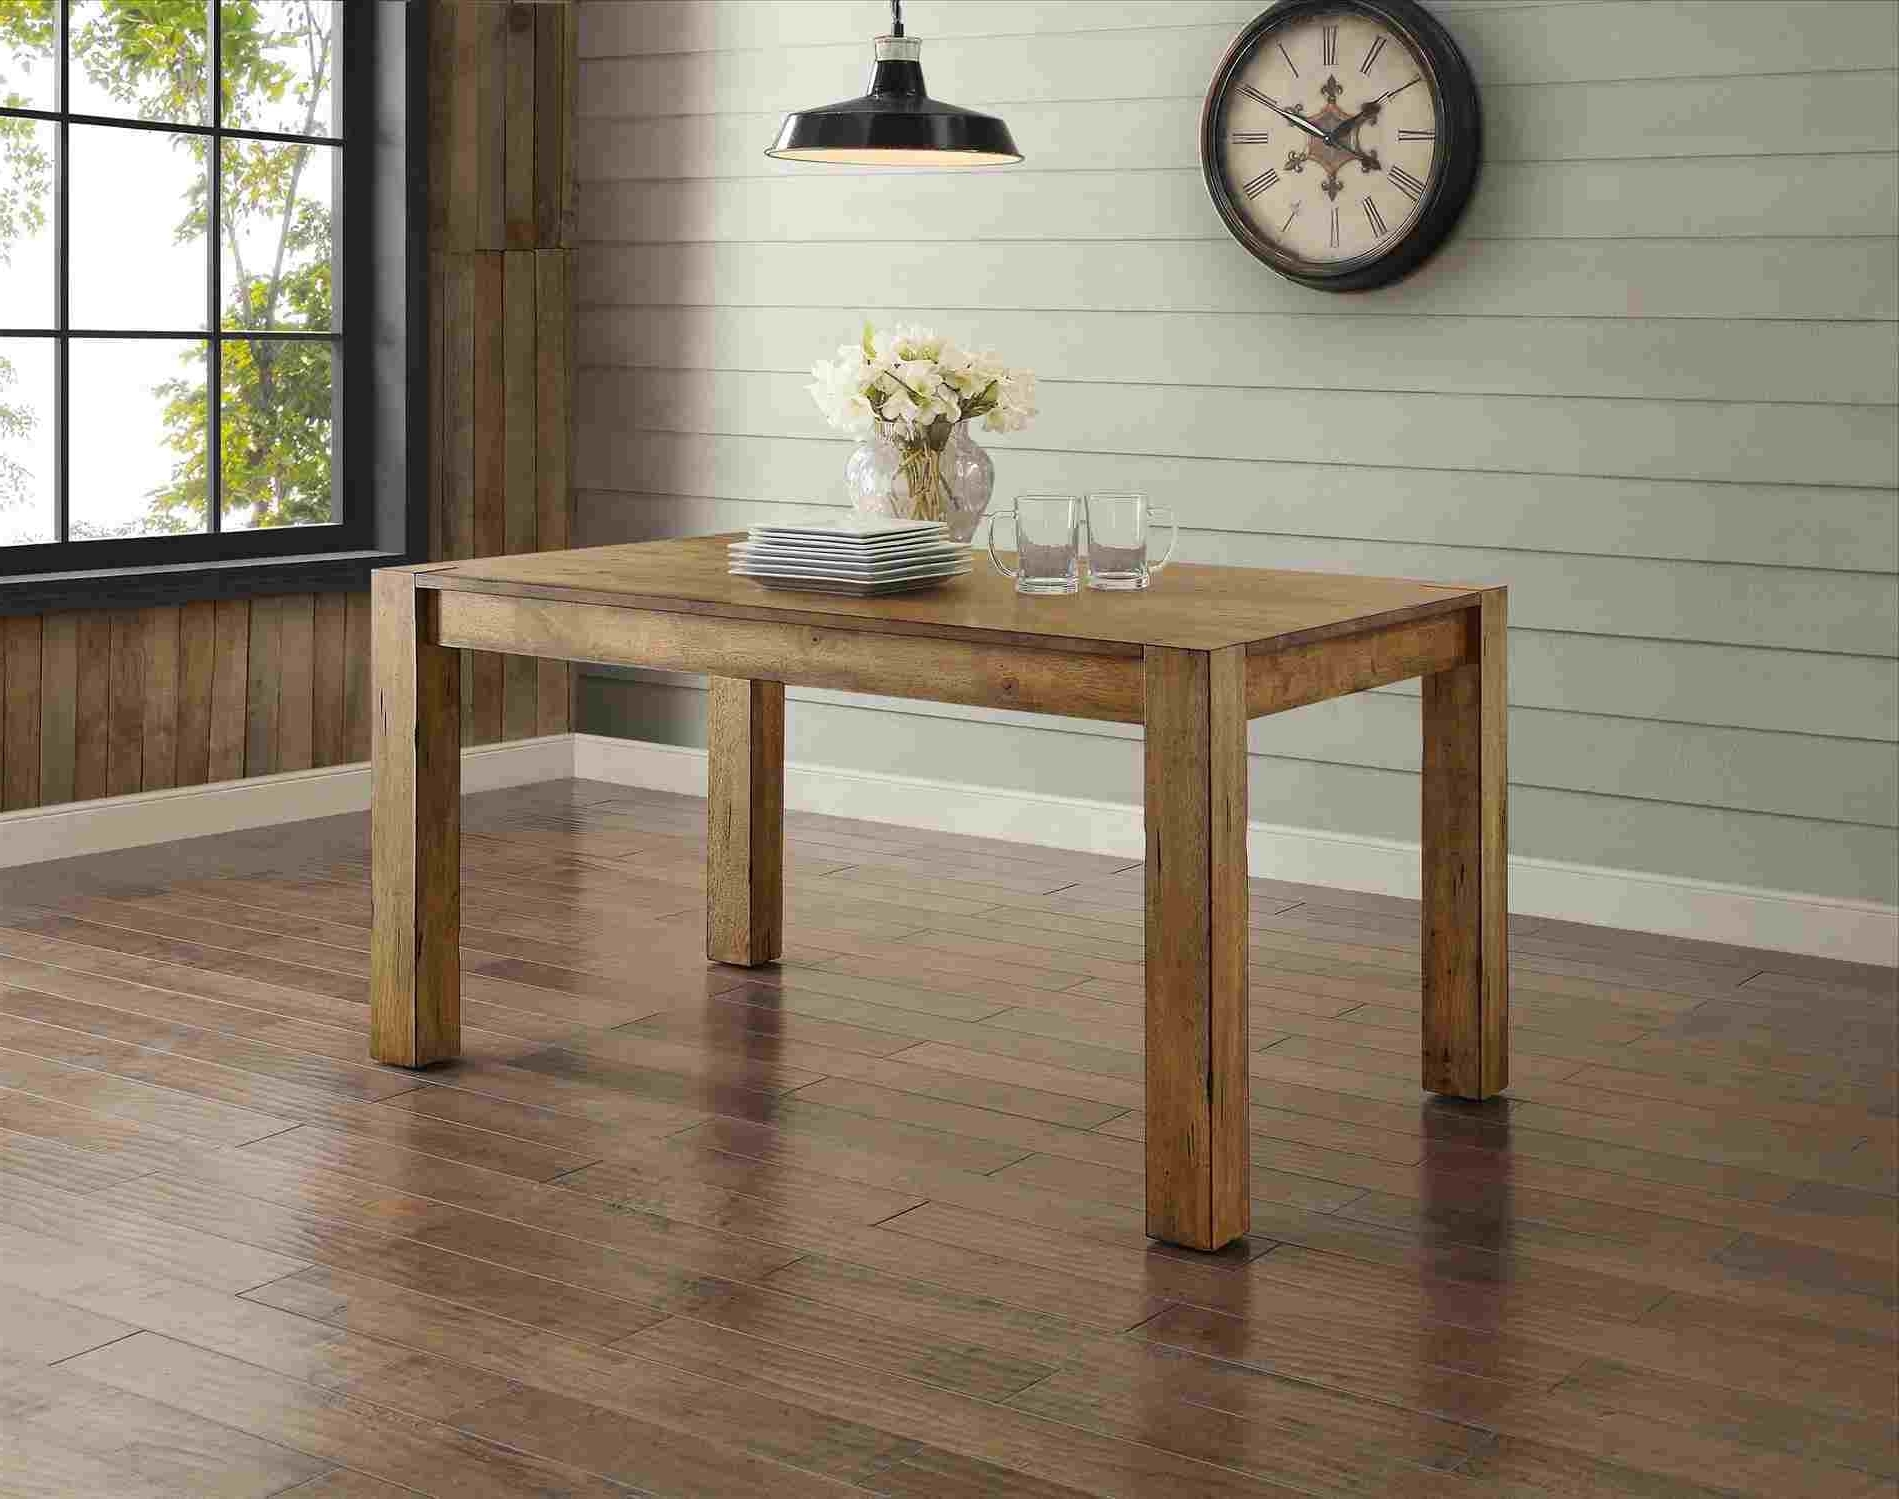 2018 32 Gallery Autumn Lane Farmhouse Dining Table (View 22 of 25)